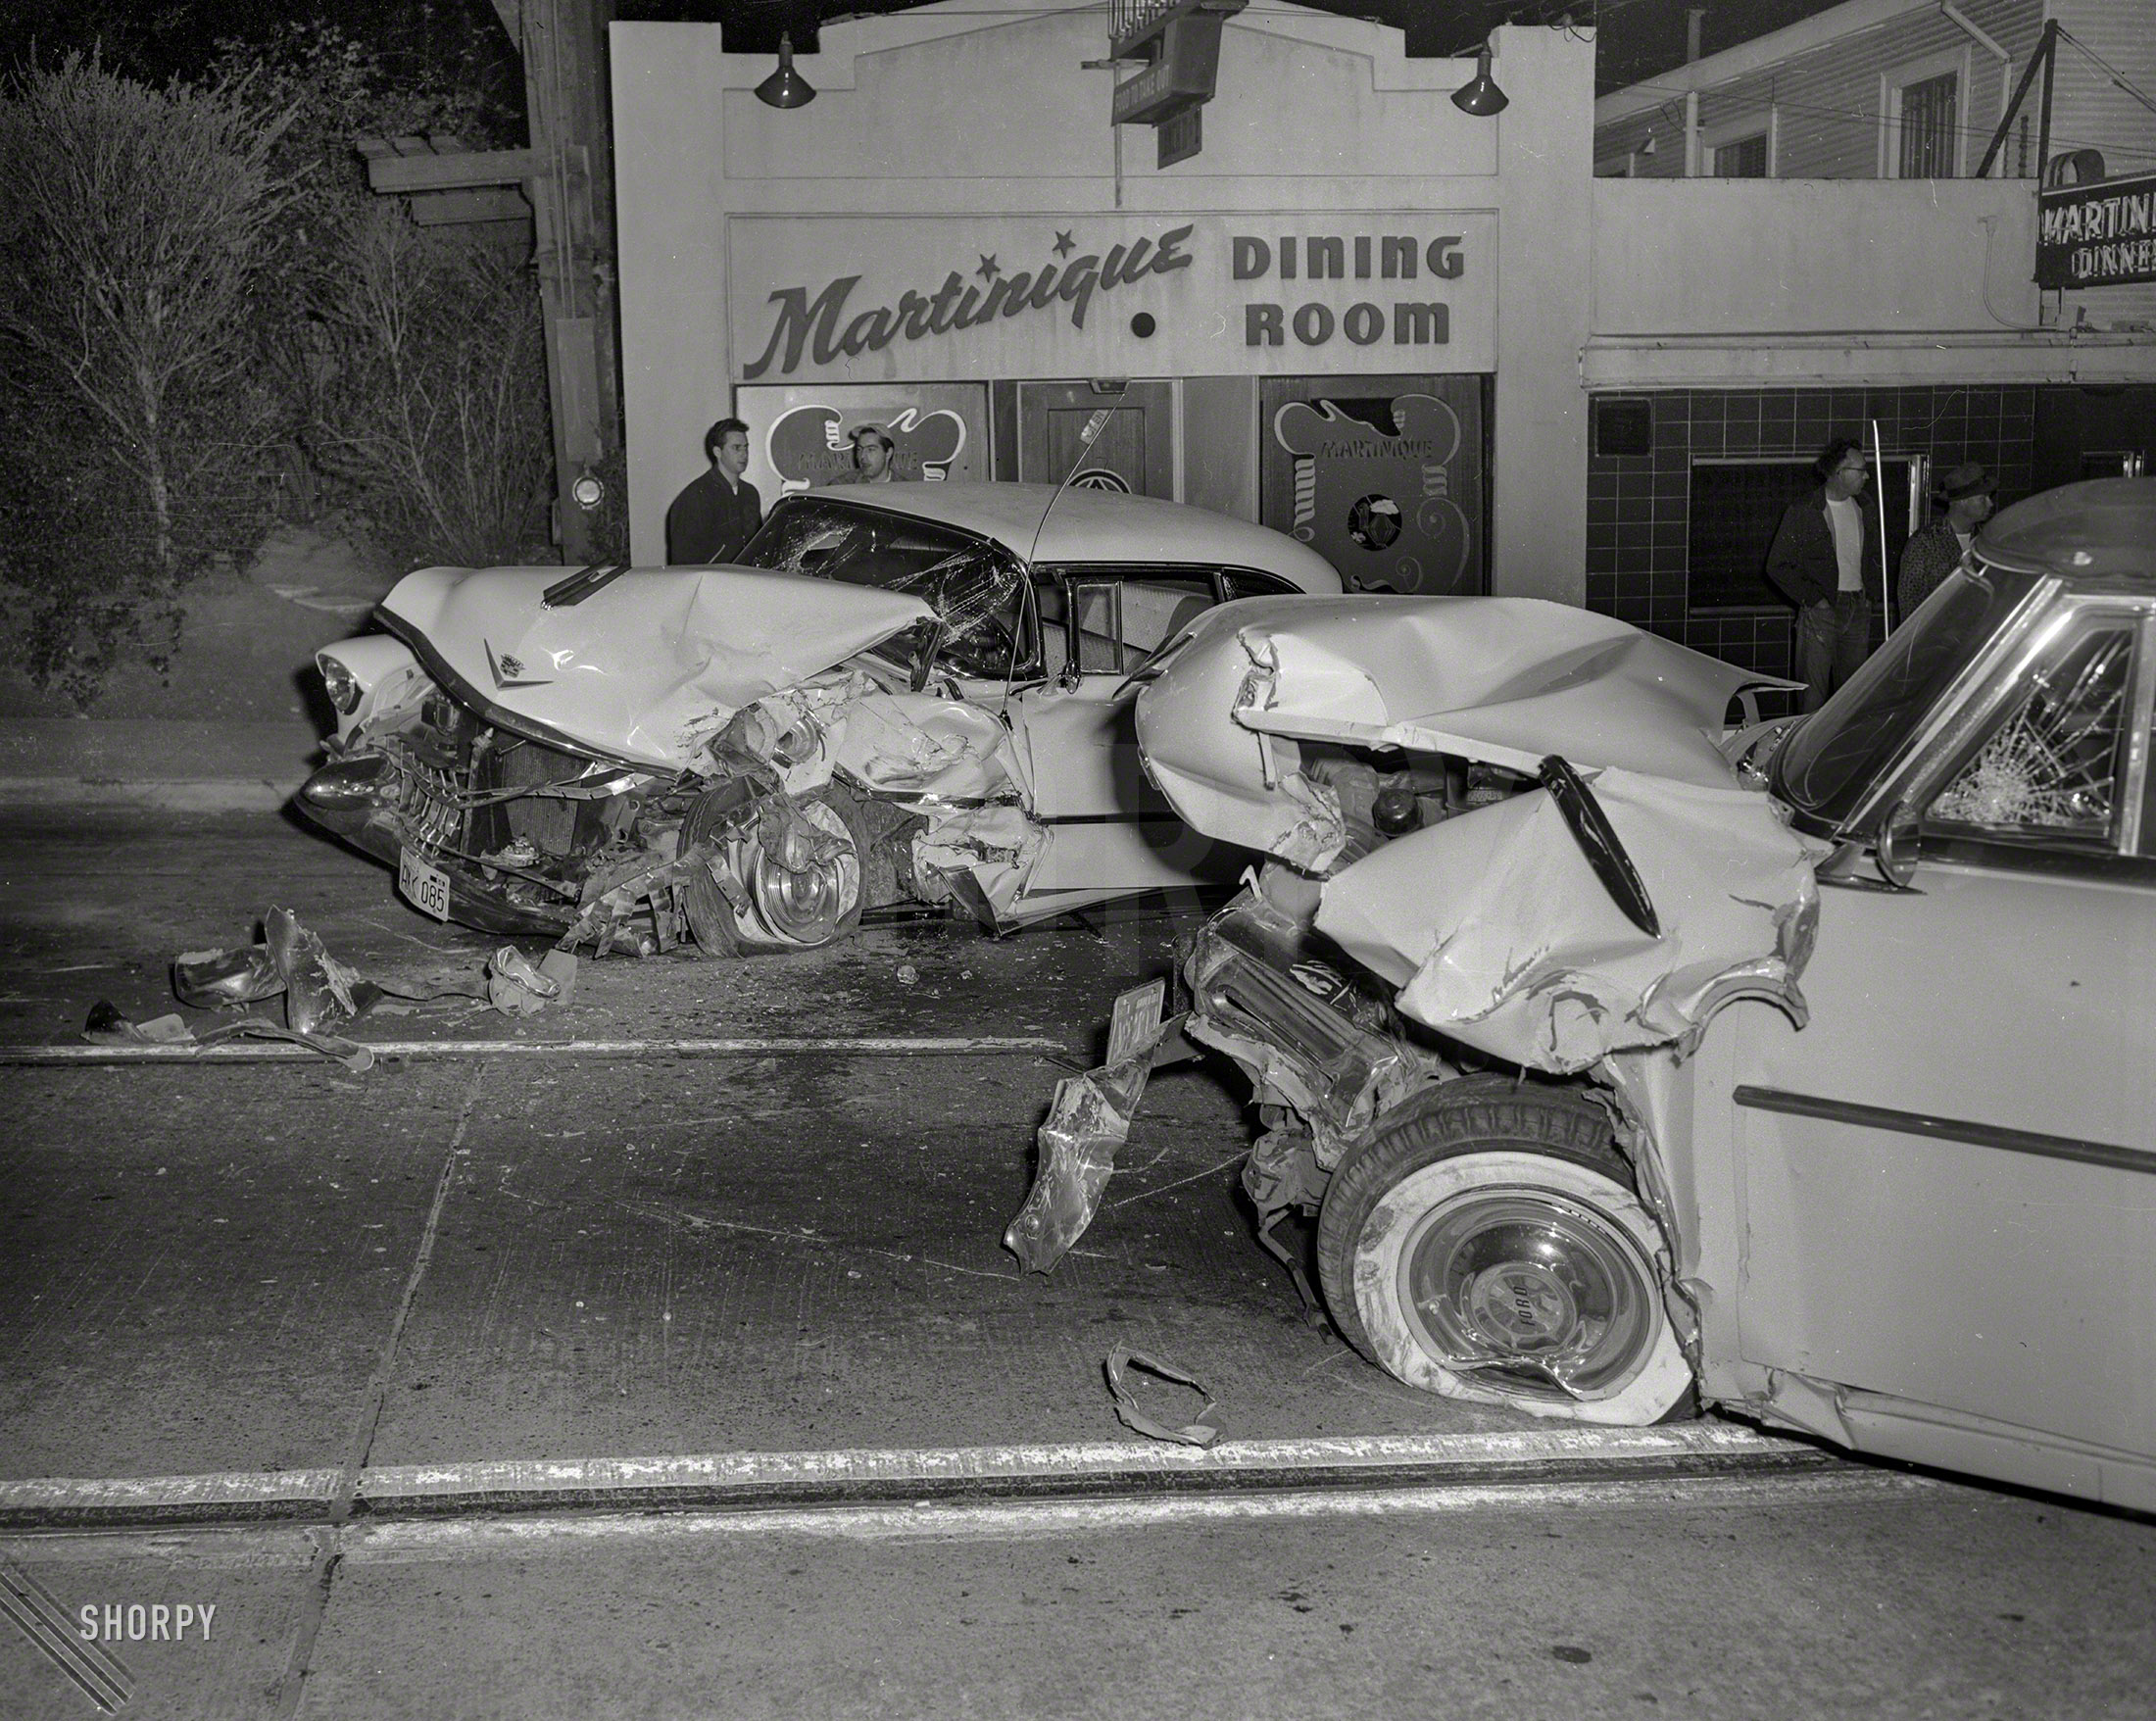 Billy Martin Car Accident